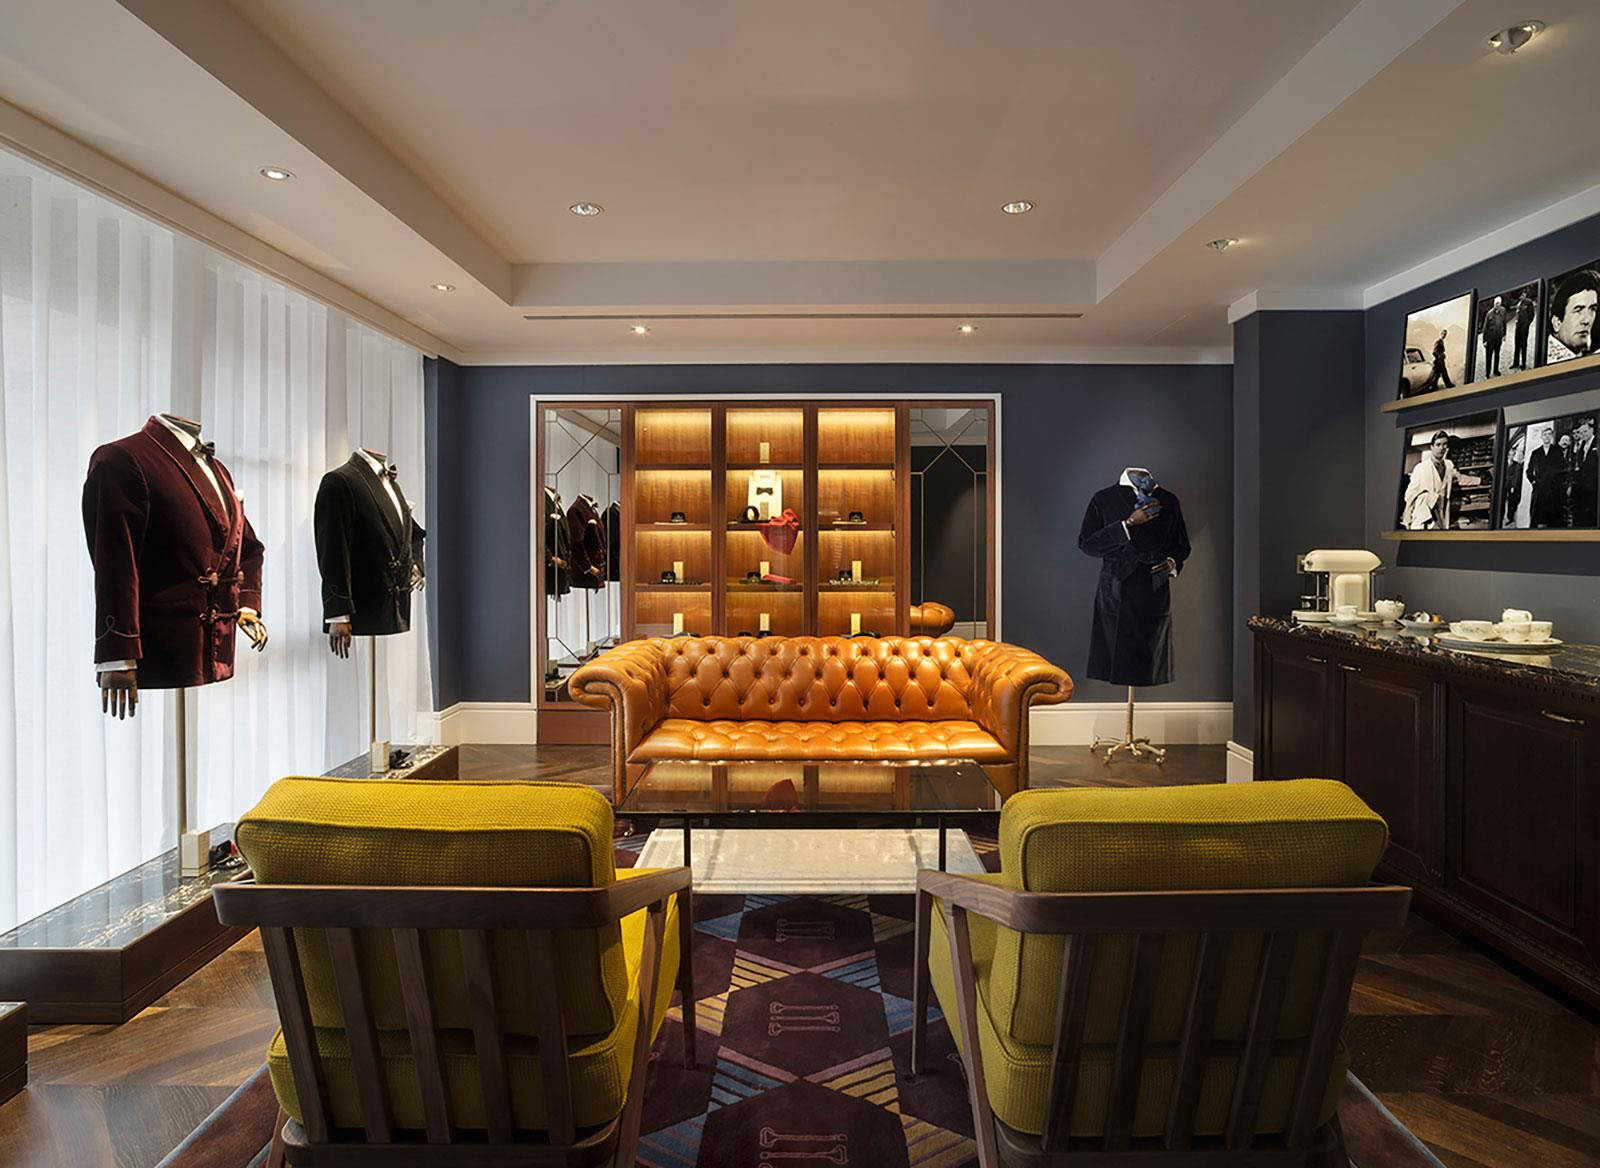 Turnbull & Asser Head Office, London